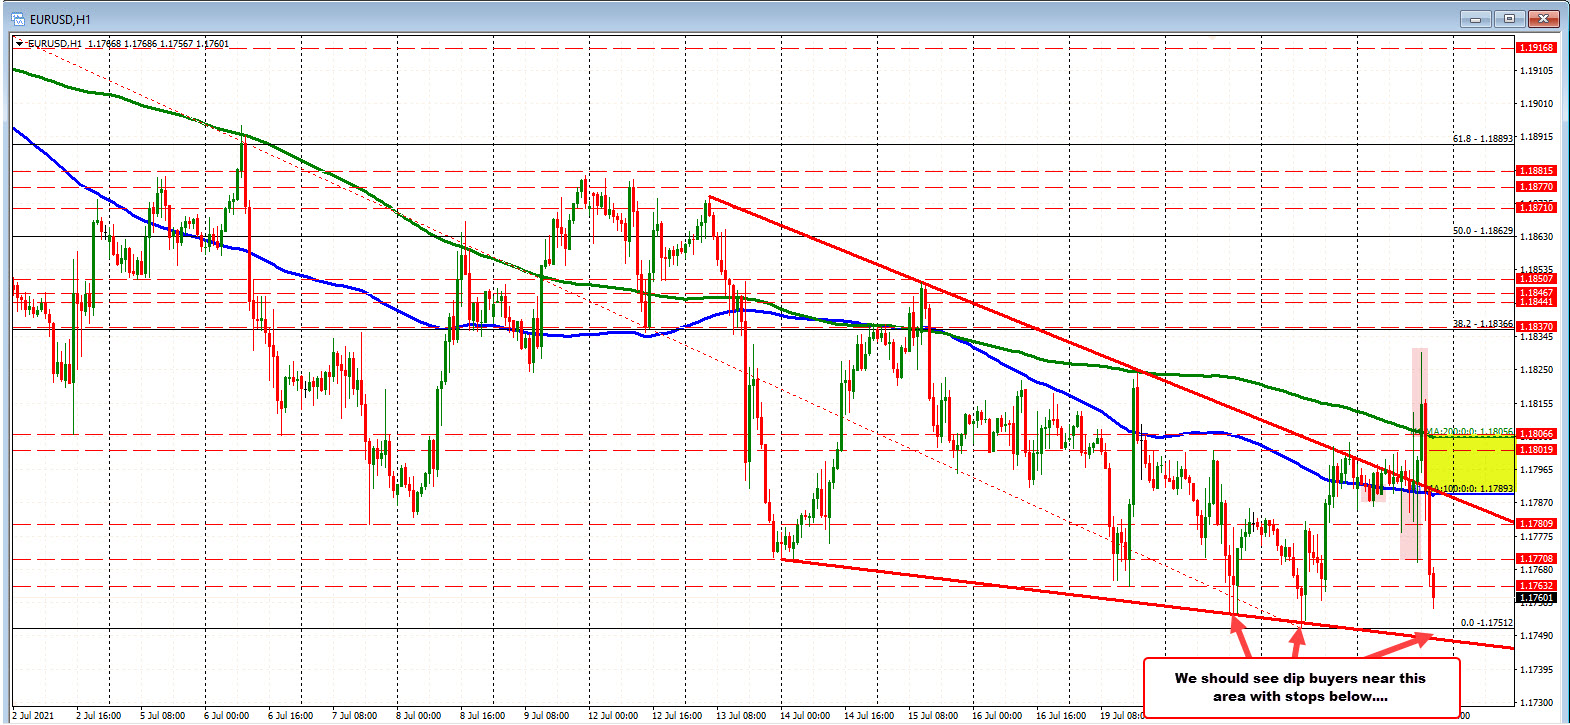 Sellers pushing the EURUSD lower now.